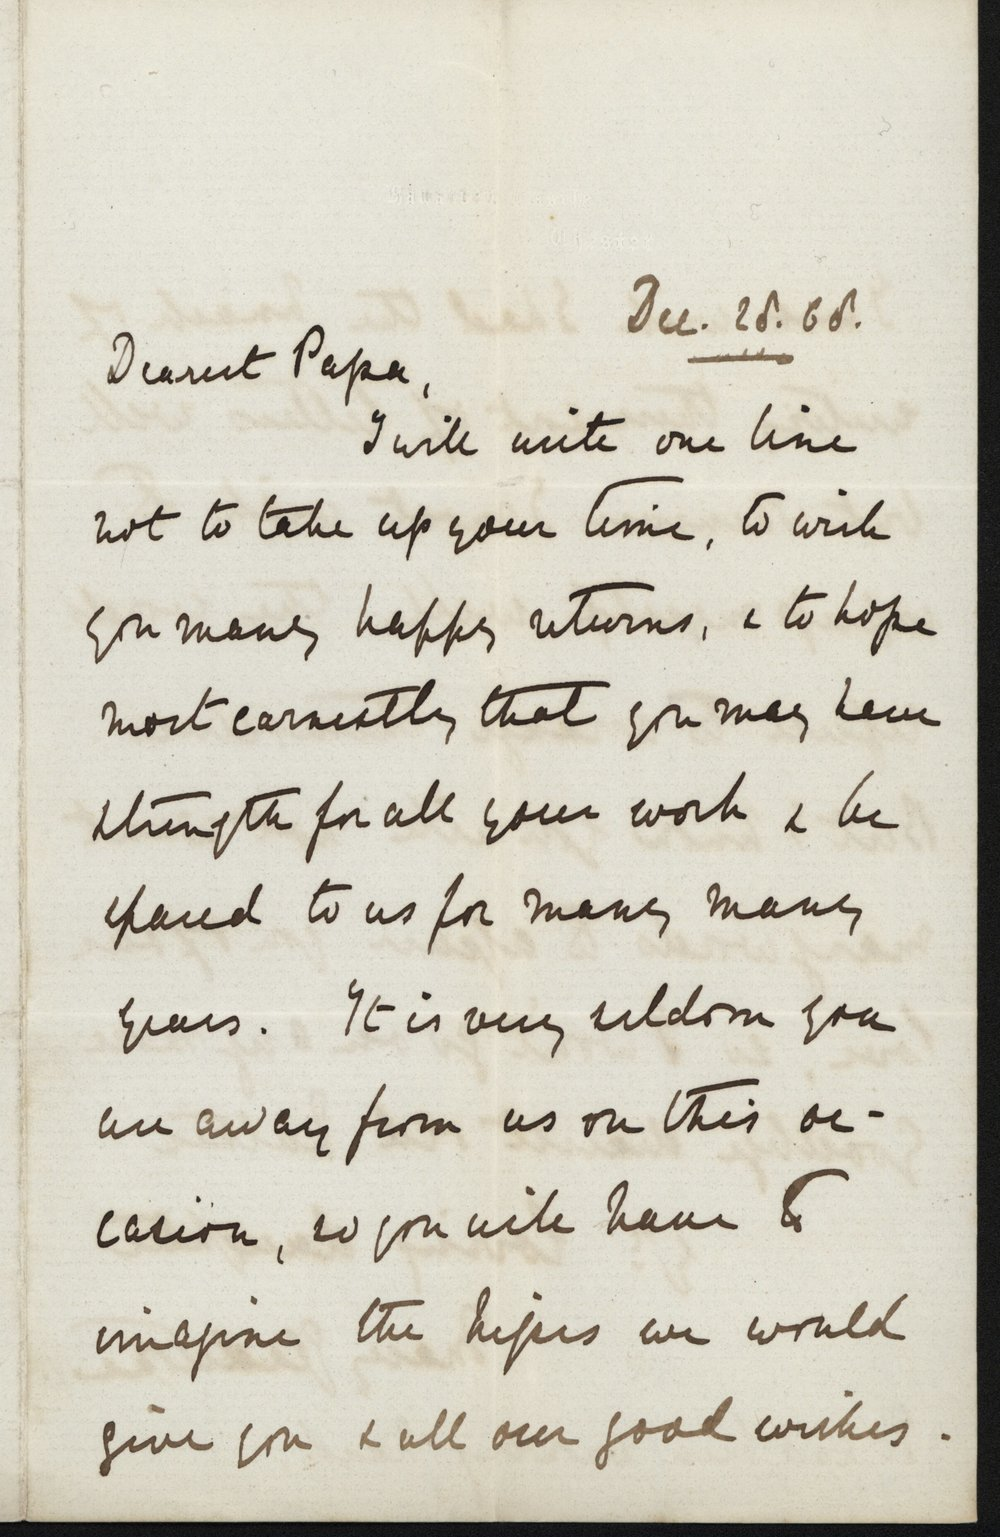 Mary Gladstone to W.E. Gladstone, 28 December 1868, GG 603. Transcription below.